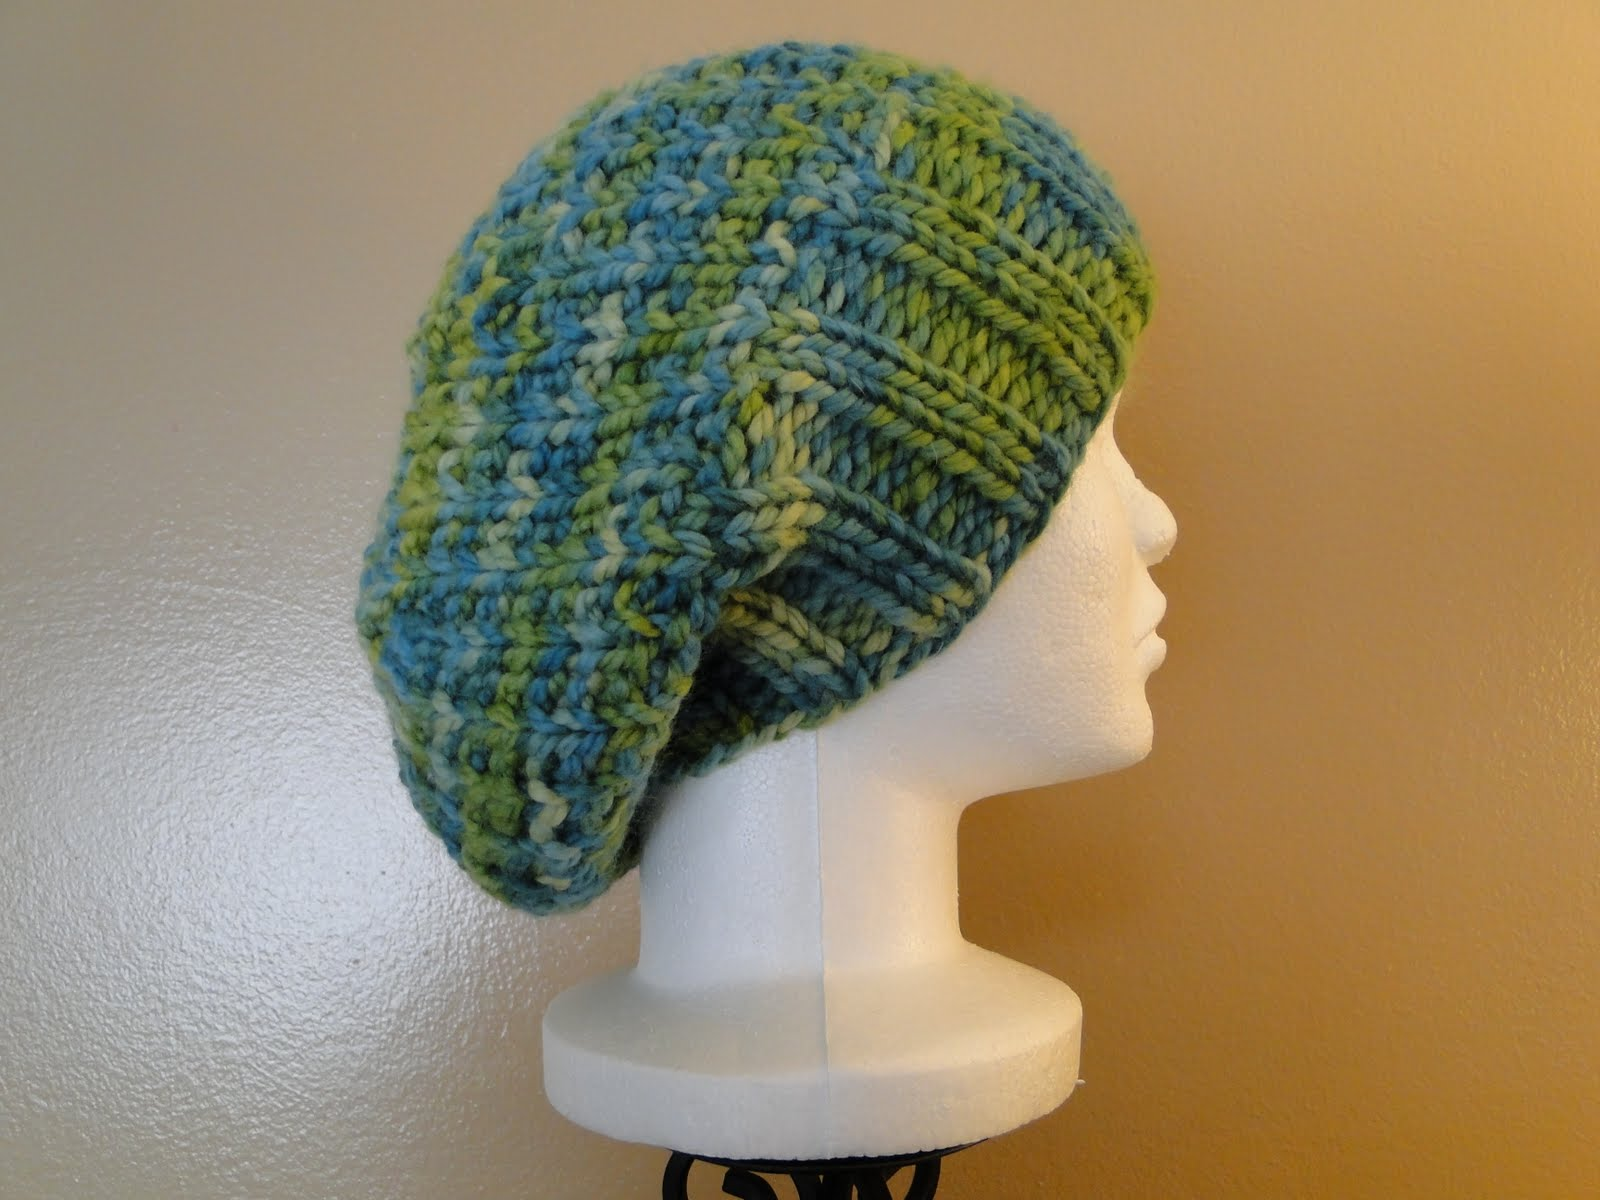 Knitting Patterns Free Slouchy Hat : Ruby Knits: Free Pattern Friday - Ribby Slouch Hat